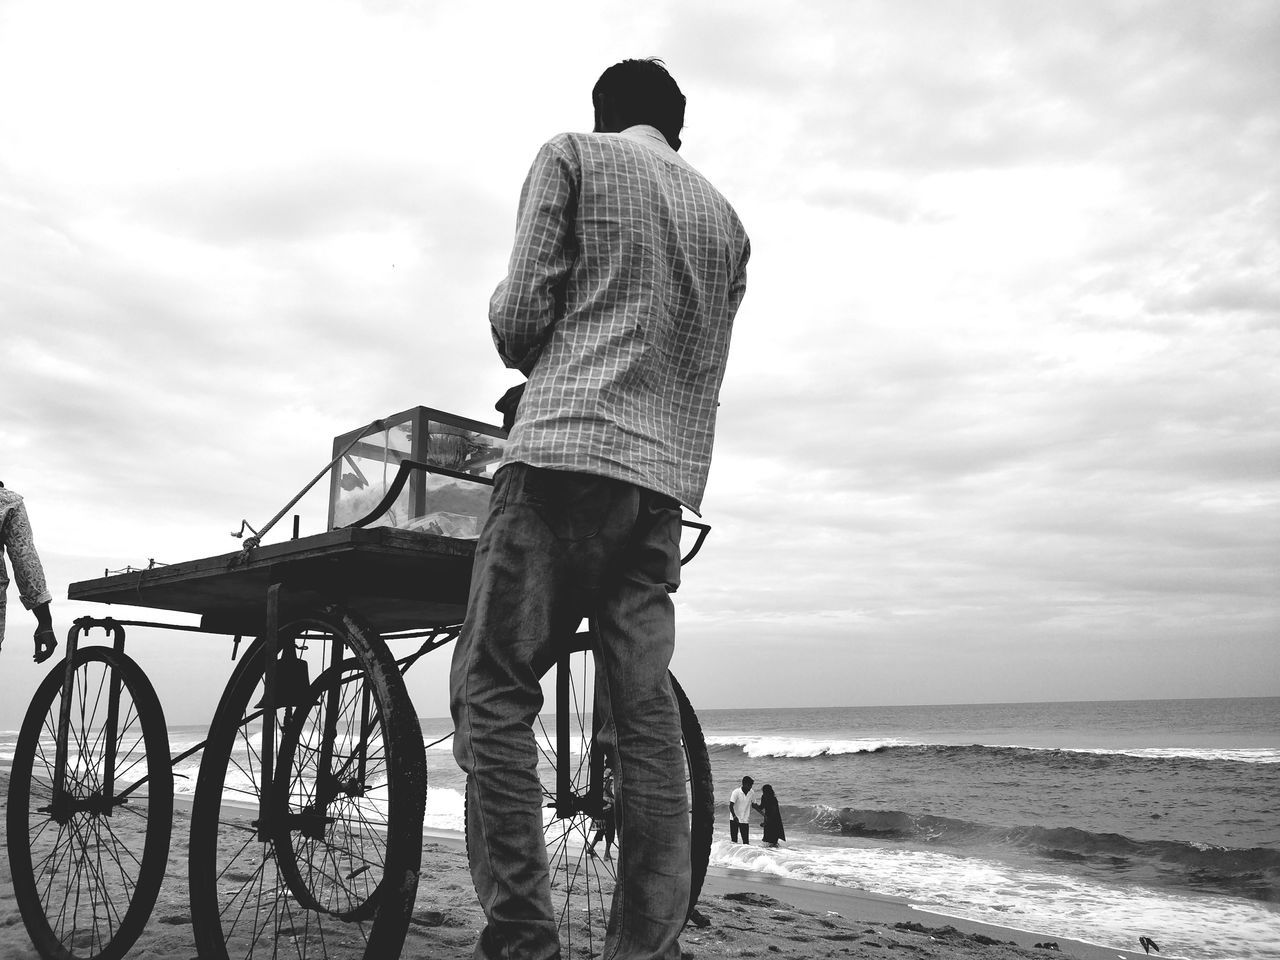 One Man Only Only Men One Person Cloud - Sky Adult Rear View Full Length People Adults Only Standing Casual Clothing Outdoors Sky Beach Sea Men Day Horizon Over Water Black & White Monochrome India Blackandwhite Bnw Nature Water